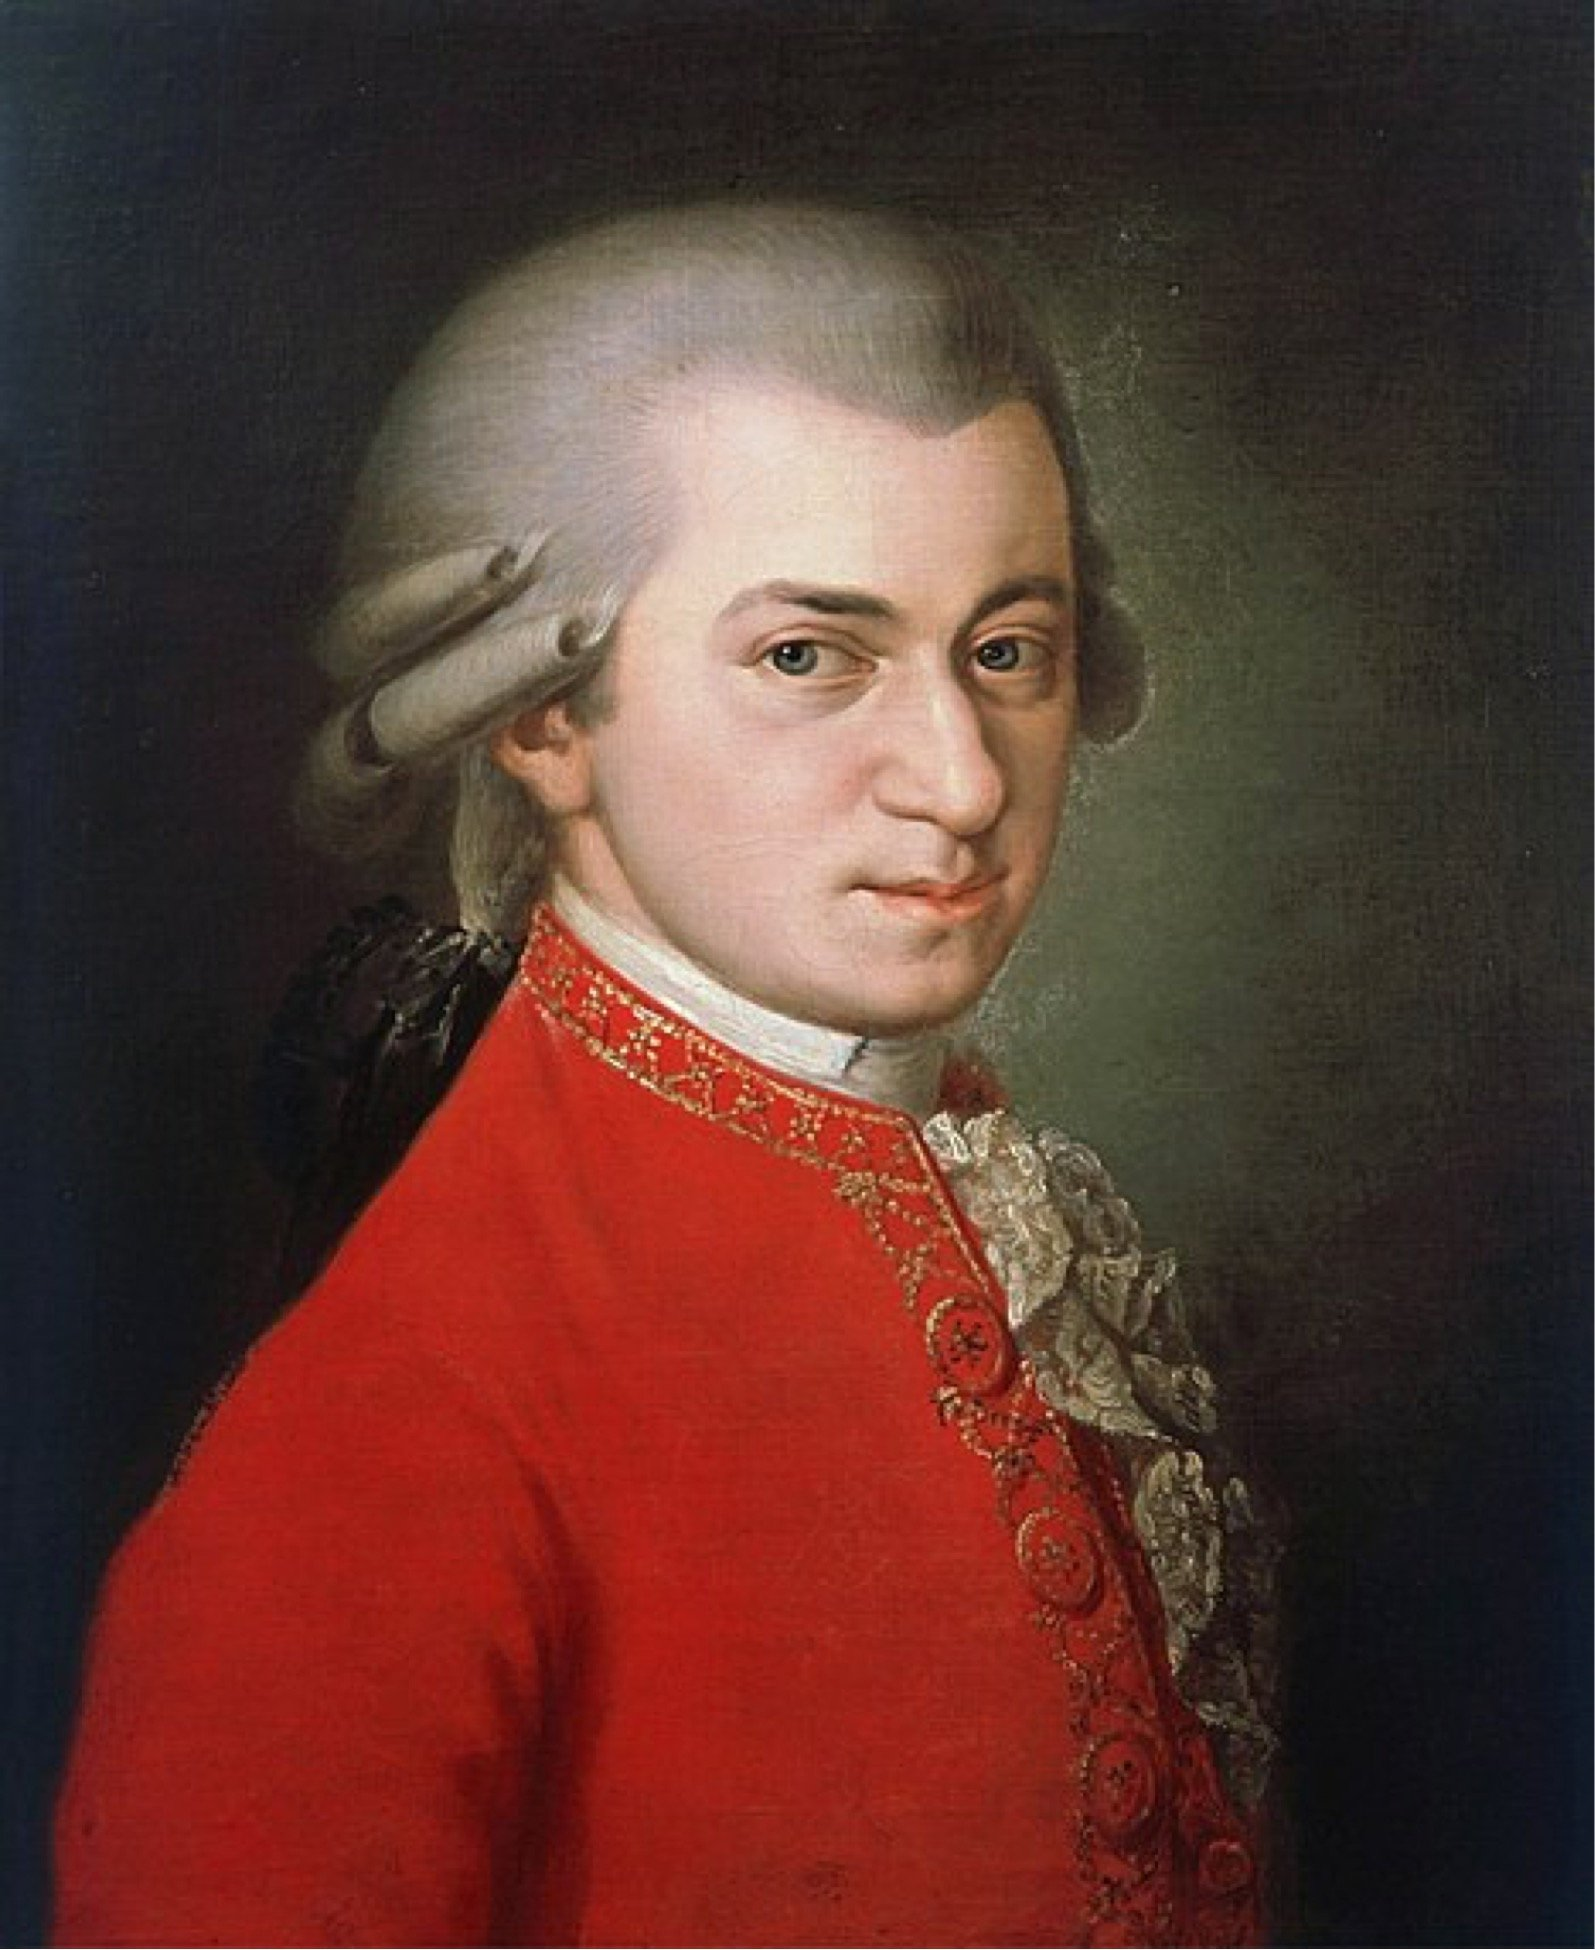 Mozart painting